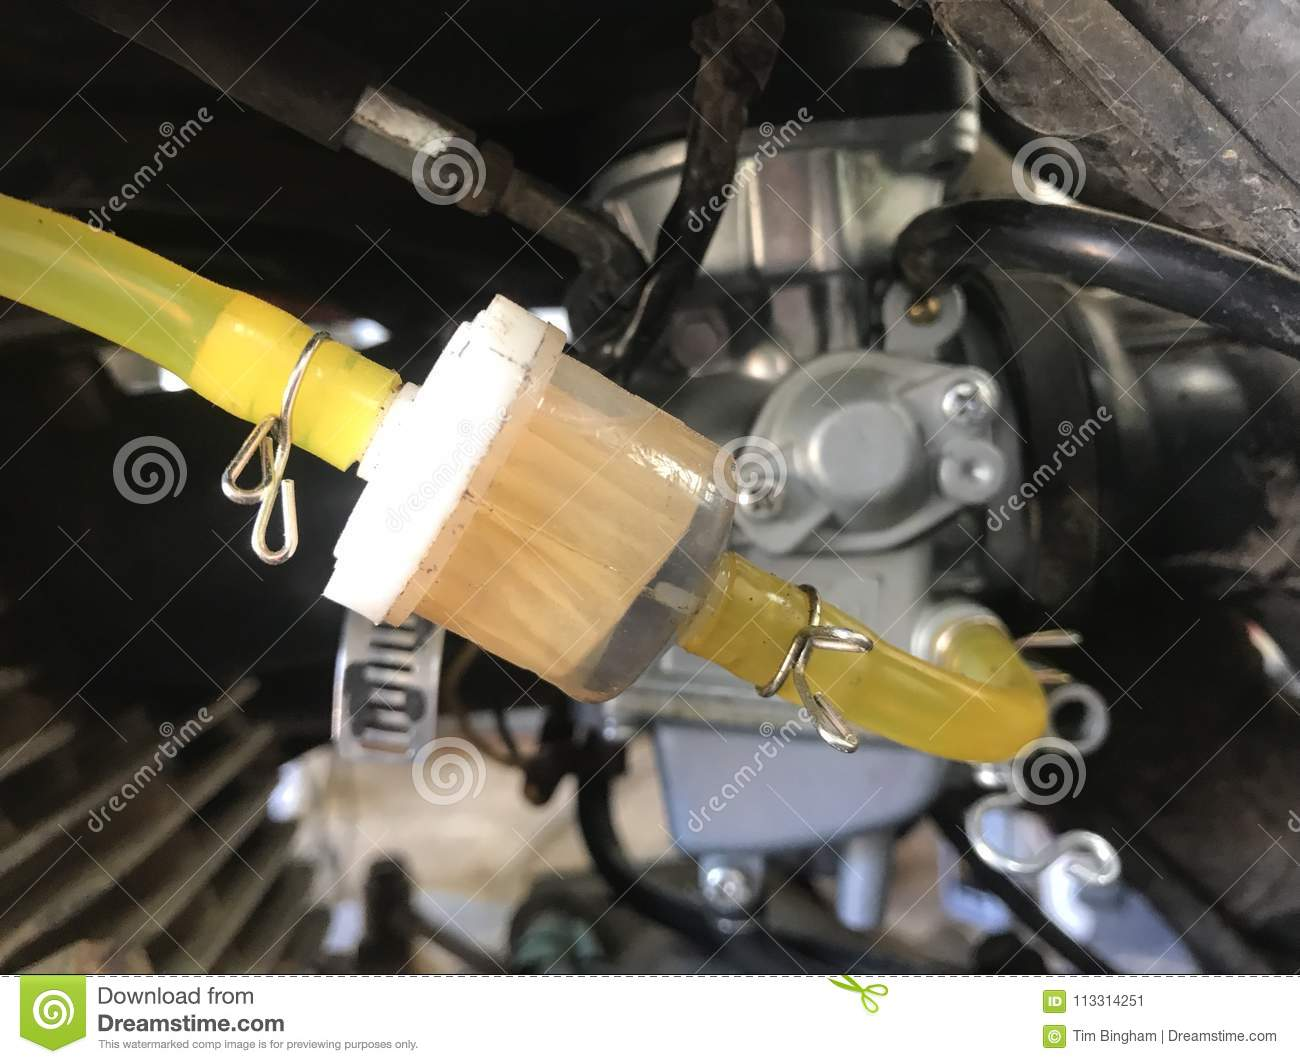 hight resolution of new fuel filter and fuel lines